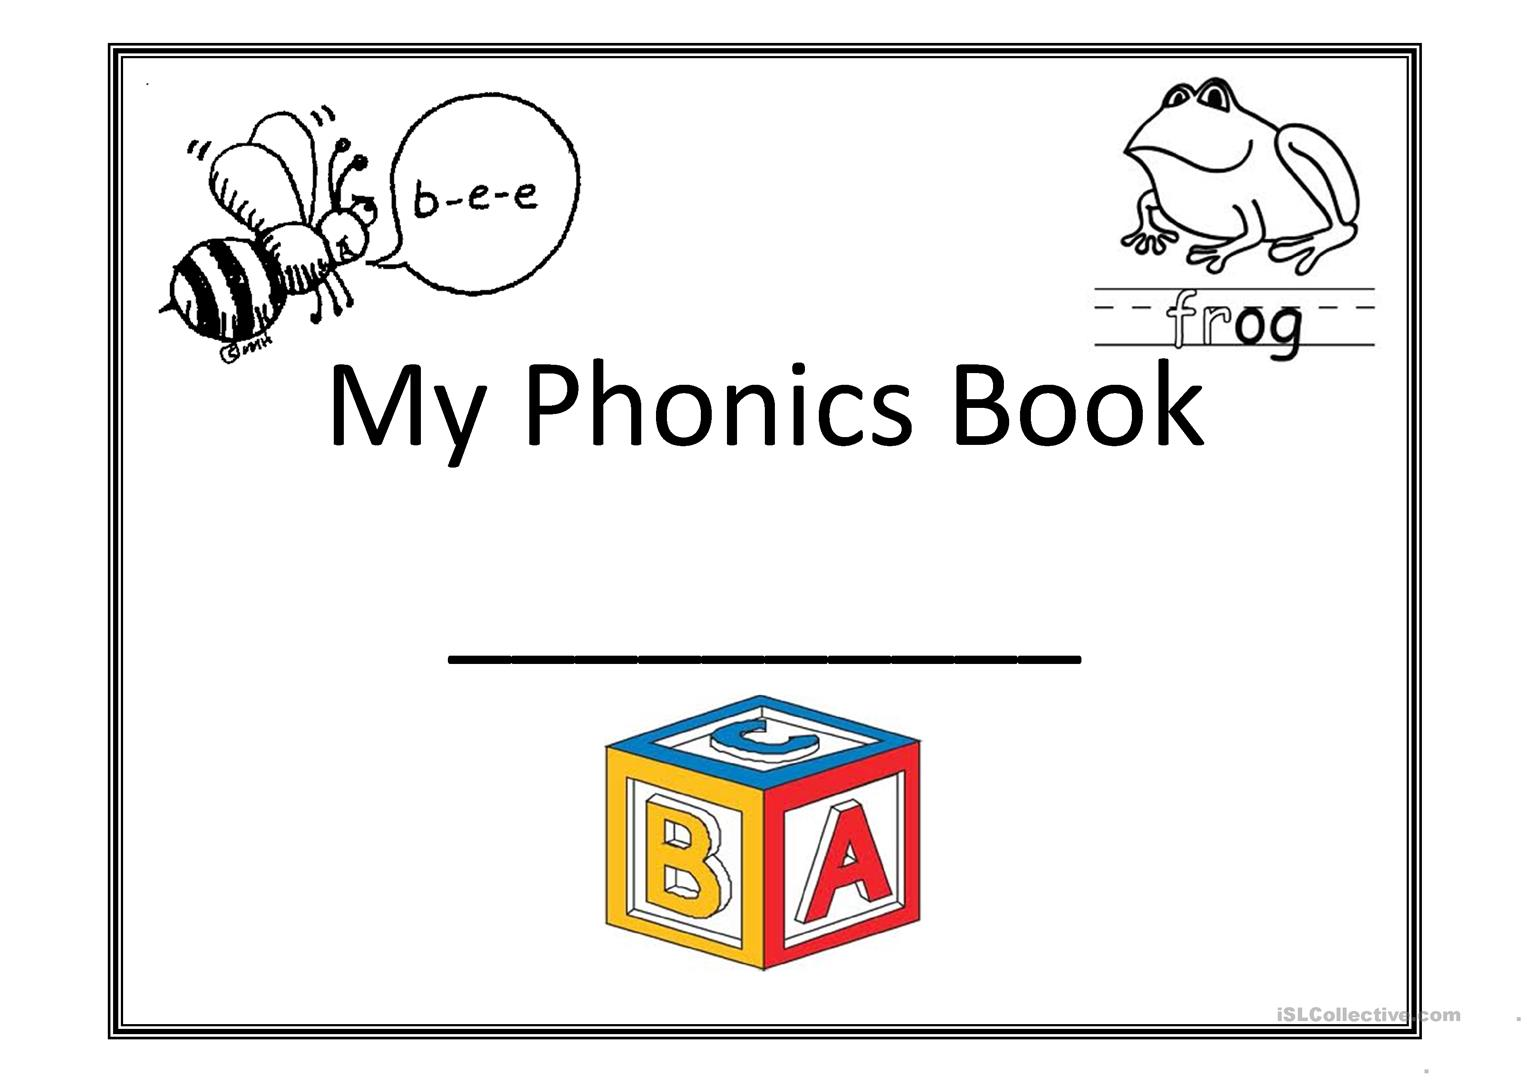 My Phonics Book